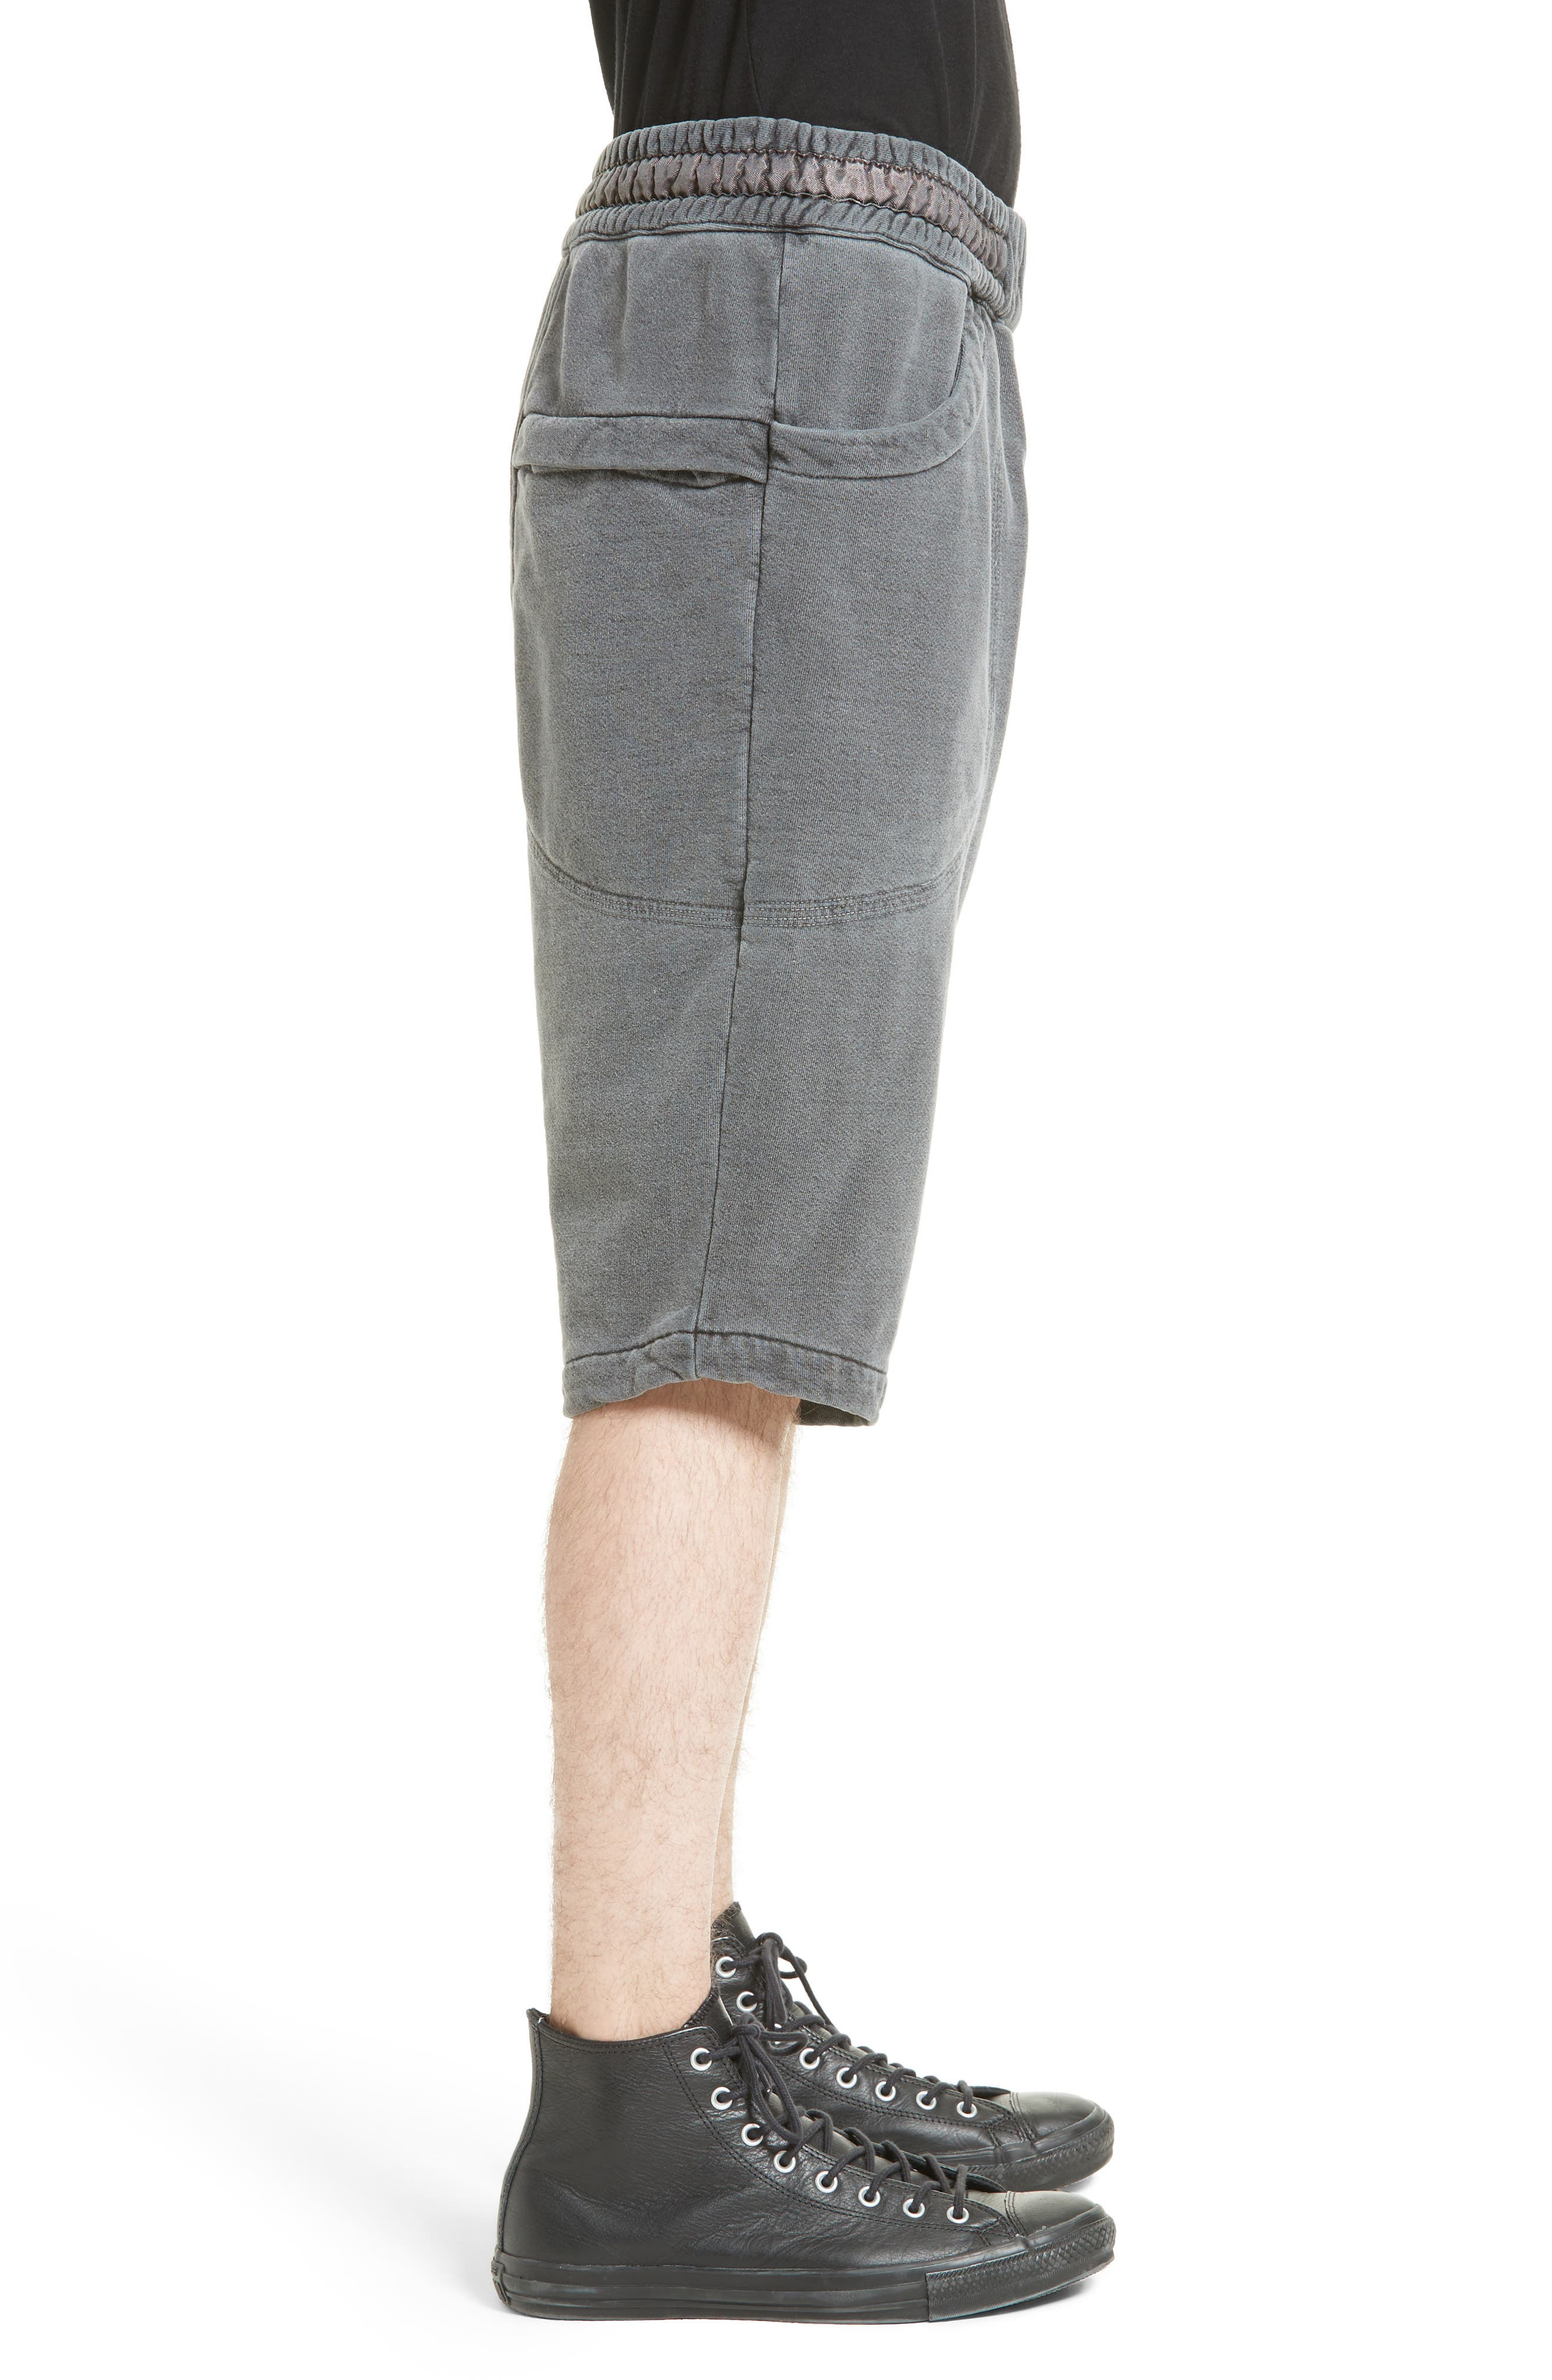 Quark Sweat Shorts,                             Alternate thumbnail 3, color,                             001